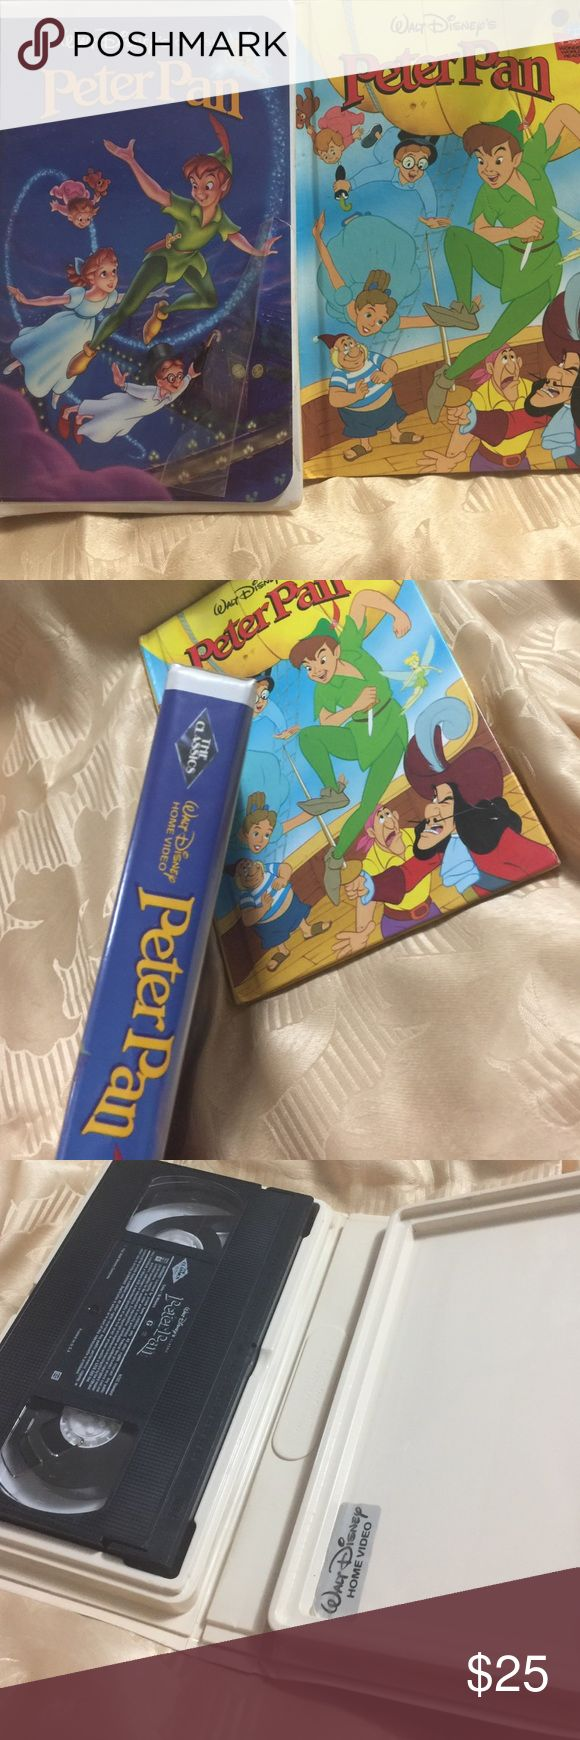 Black Diamond Walt Disney VHS Peter Pan & Book Classic and collectors item Black Diamond Peter Pan VHS and a book in EUC to go with it.  Don't miss this item!!!! Walt Disney Other